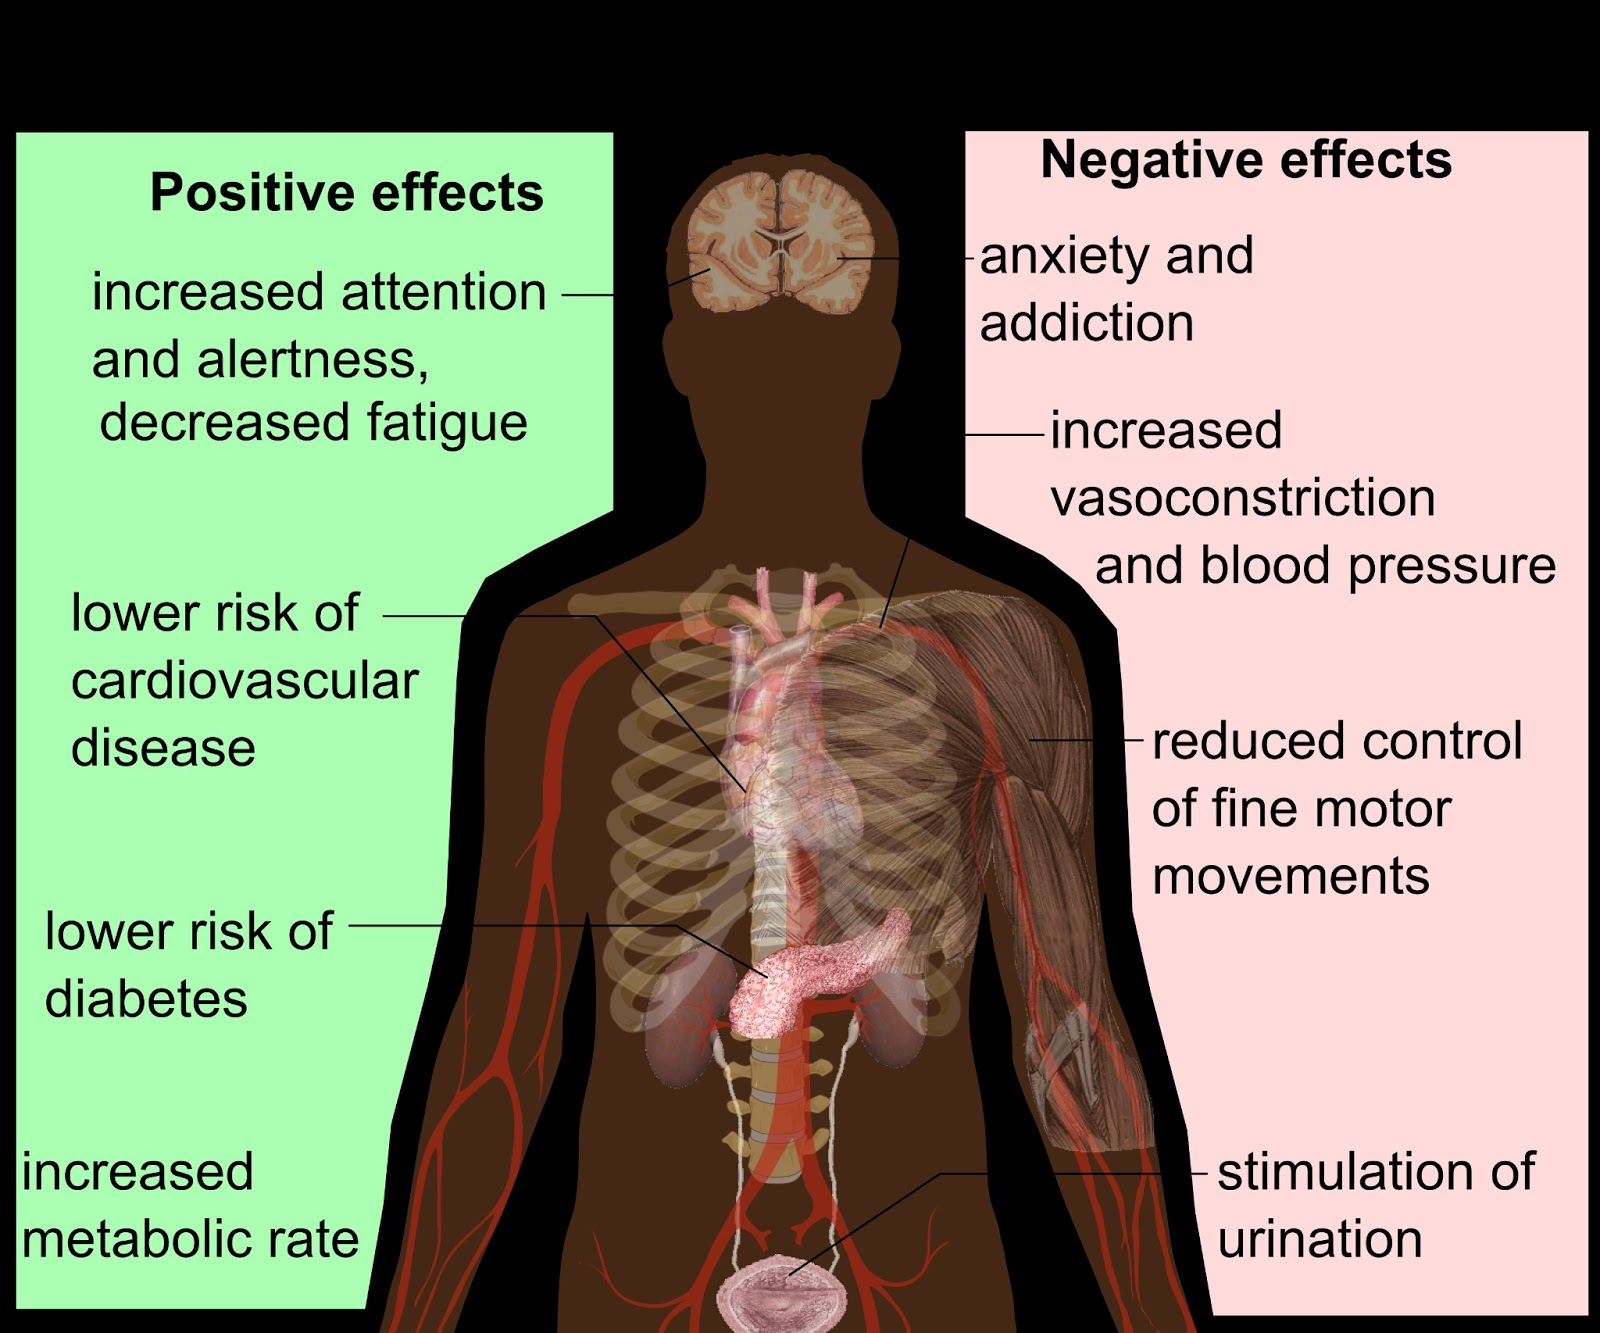 the effects of caffeine A sample informative speech on caffeine and its beneficial and negative effects using topics that interest you will help make your public speaking presentation flow.